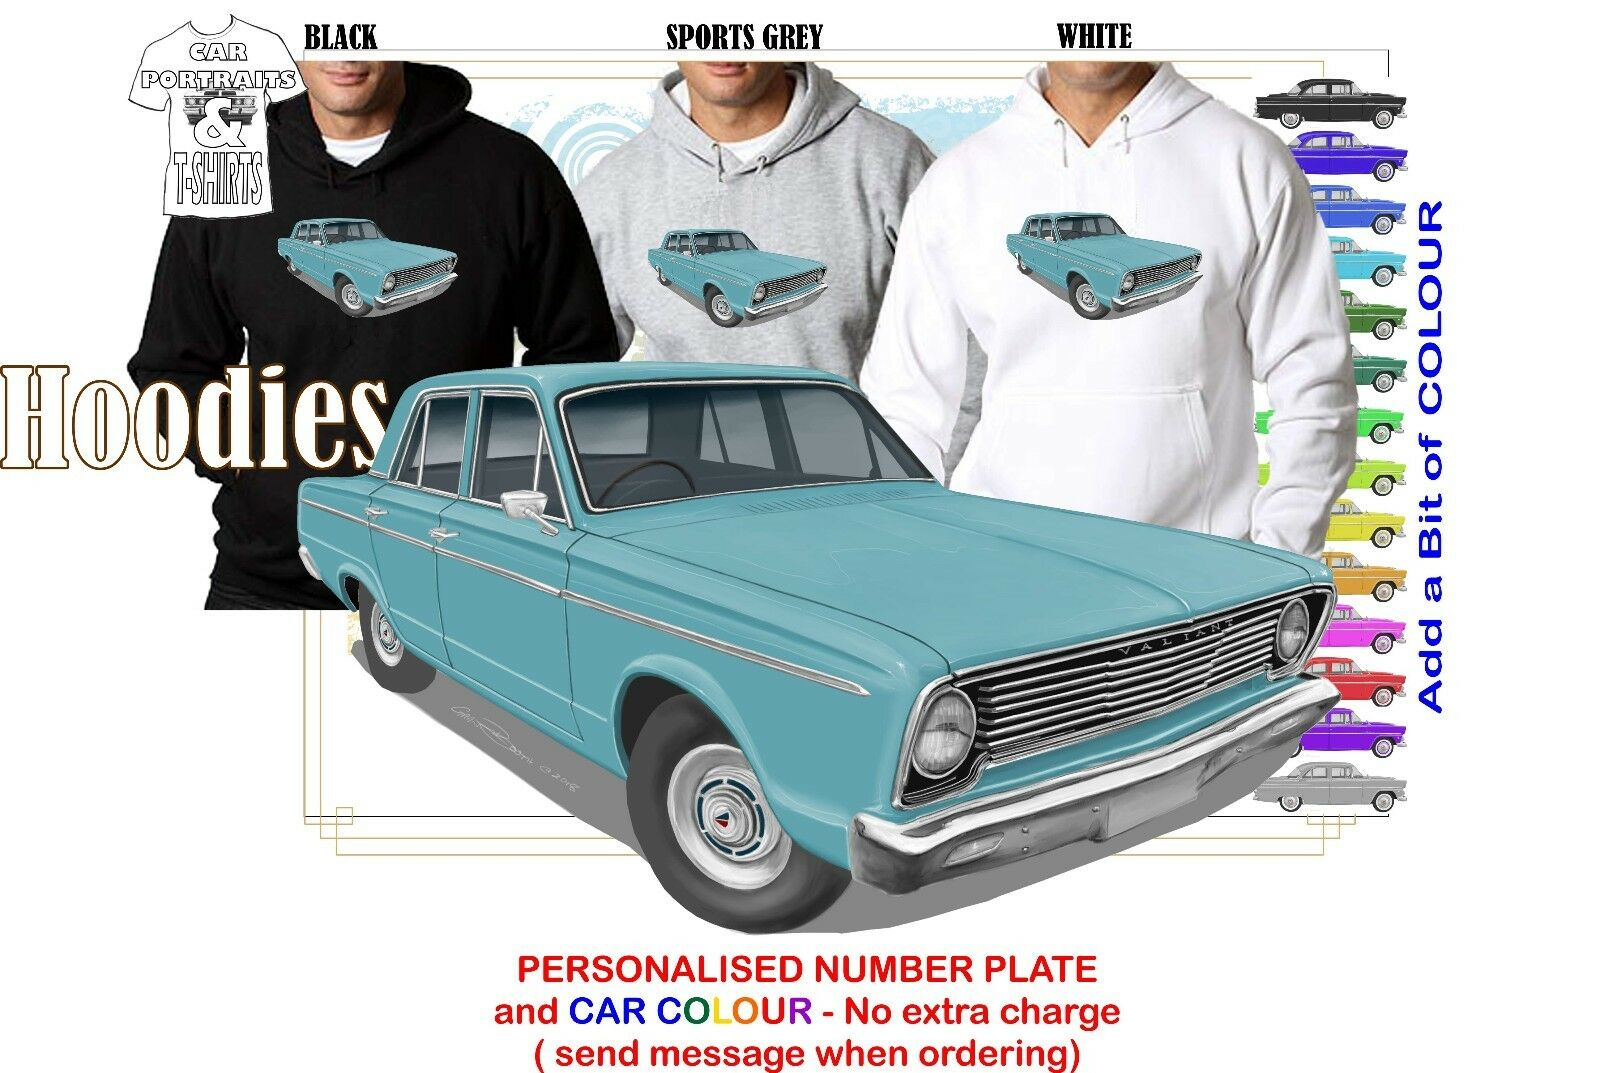 66-67 VC VALIANT SEDAN HOODIE ILLUSTRATED CLASSIC RETRO MUSCLE CAR